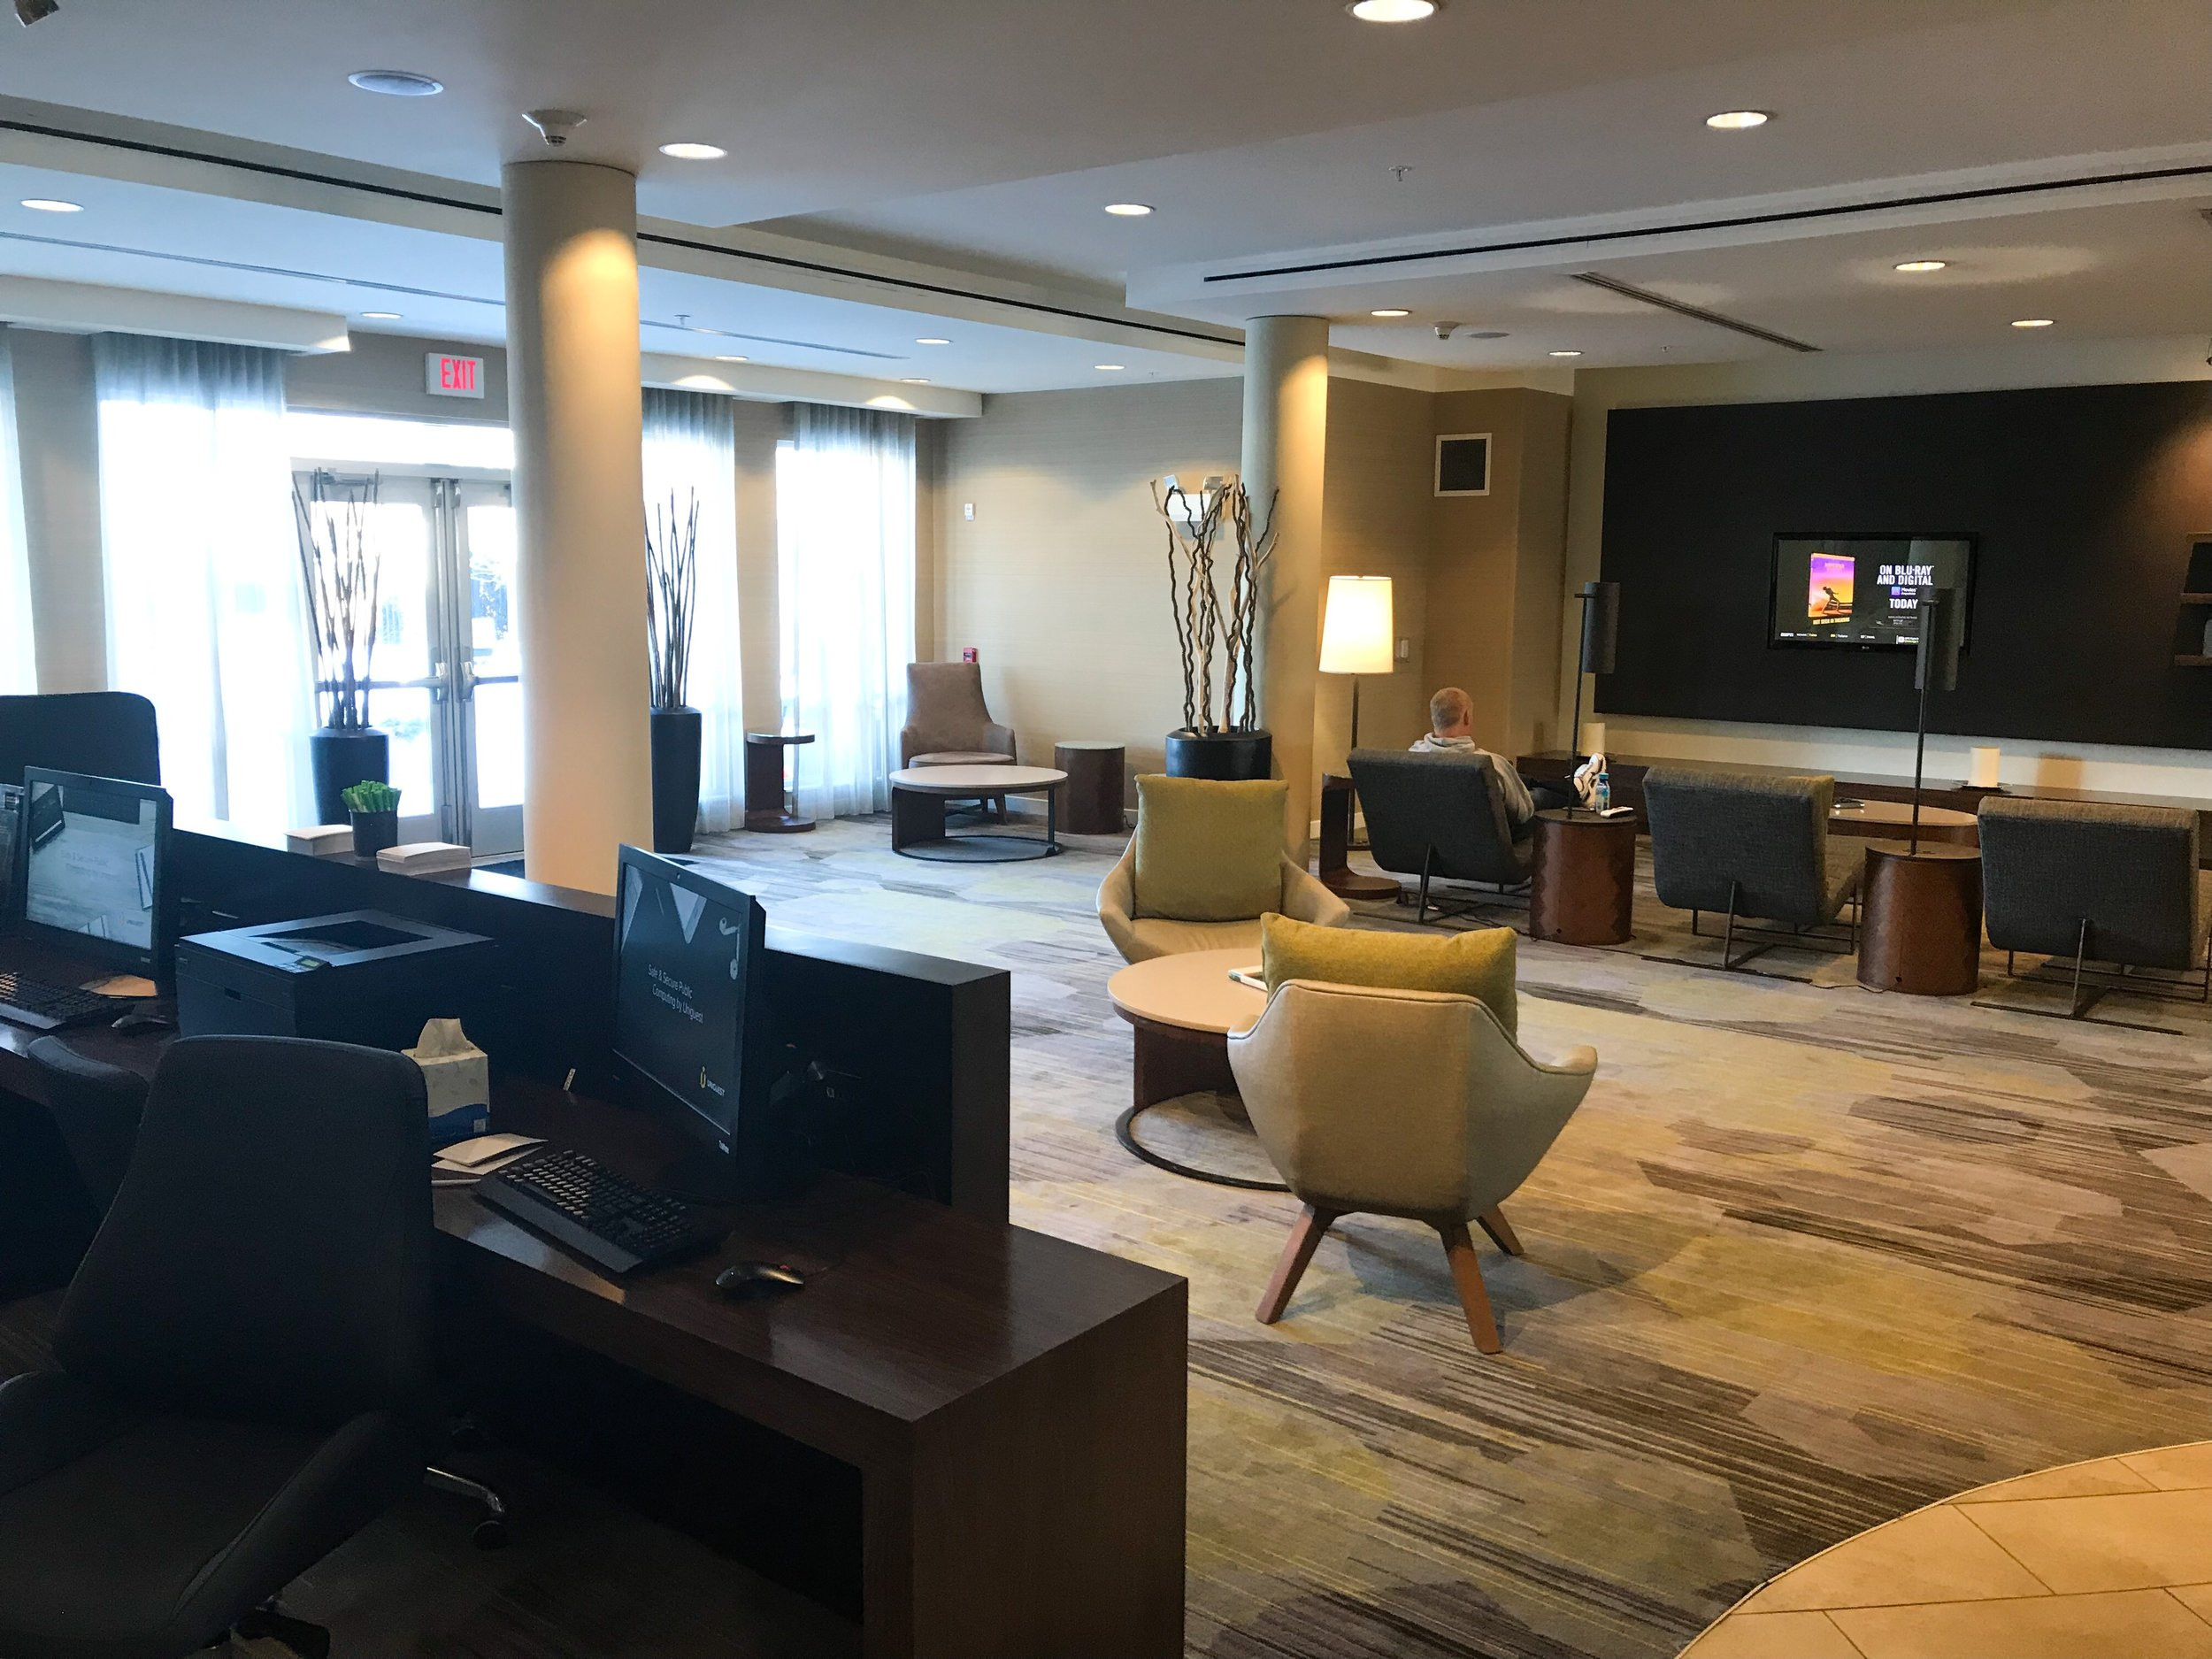 There are a couple computers with complimentary printing in the lobby.